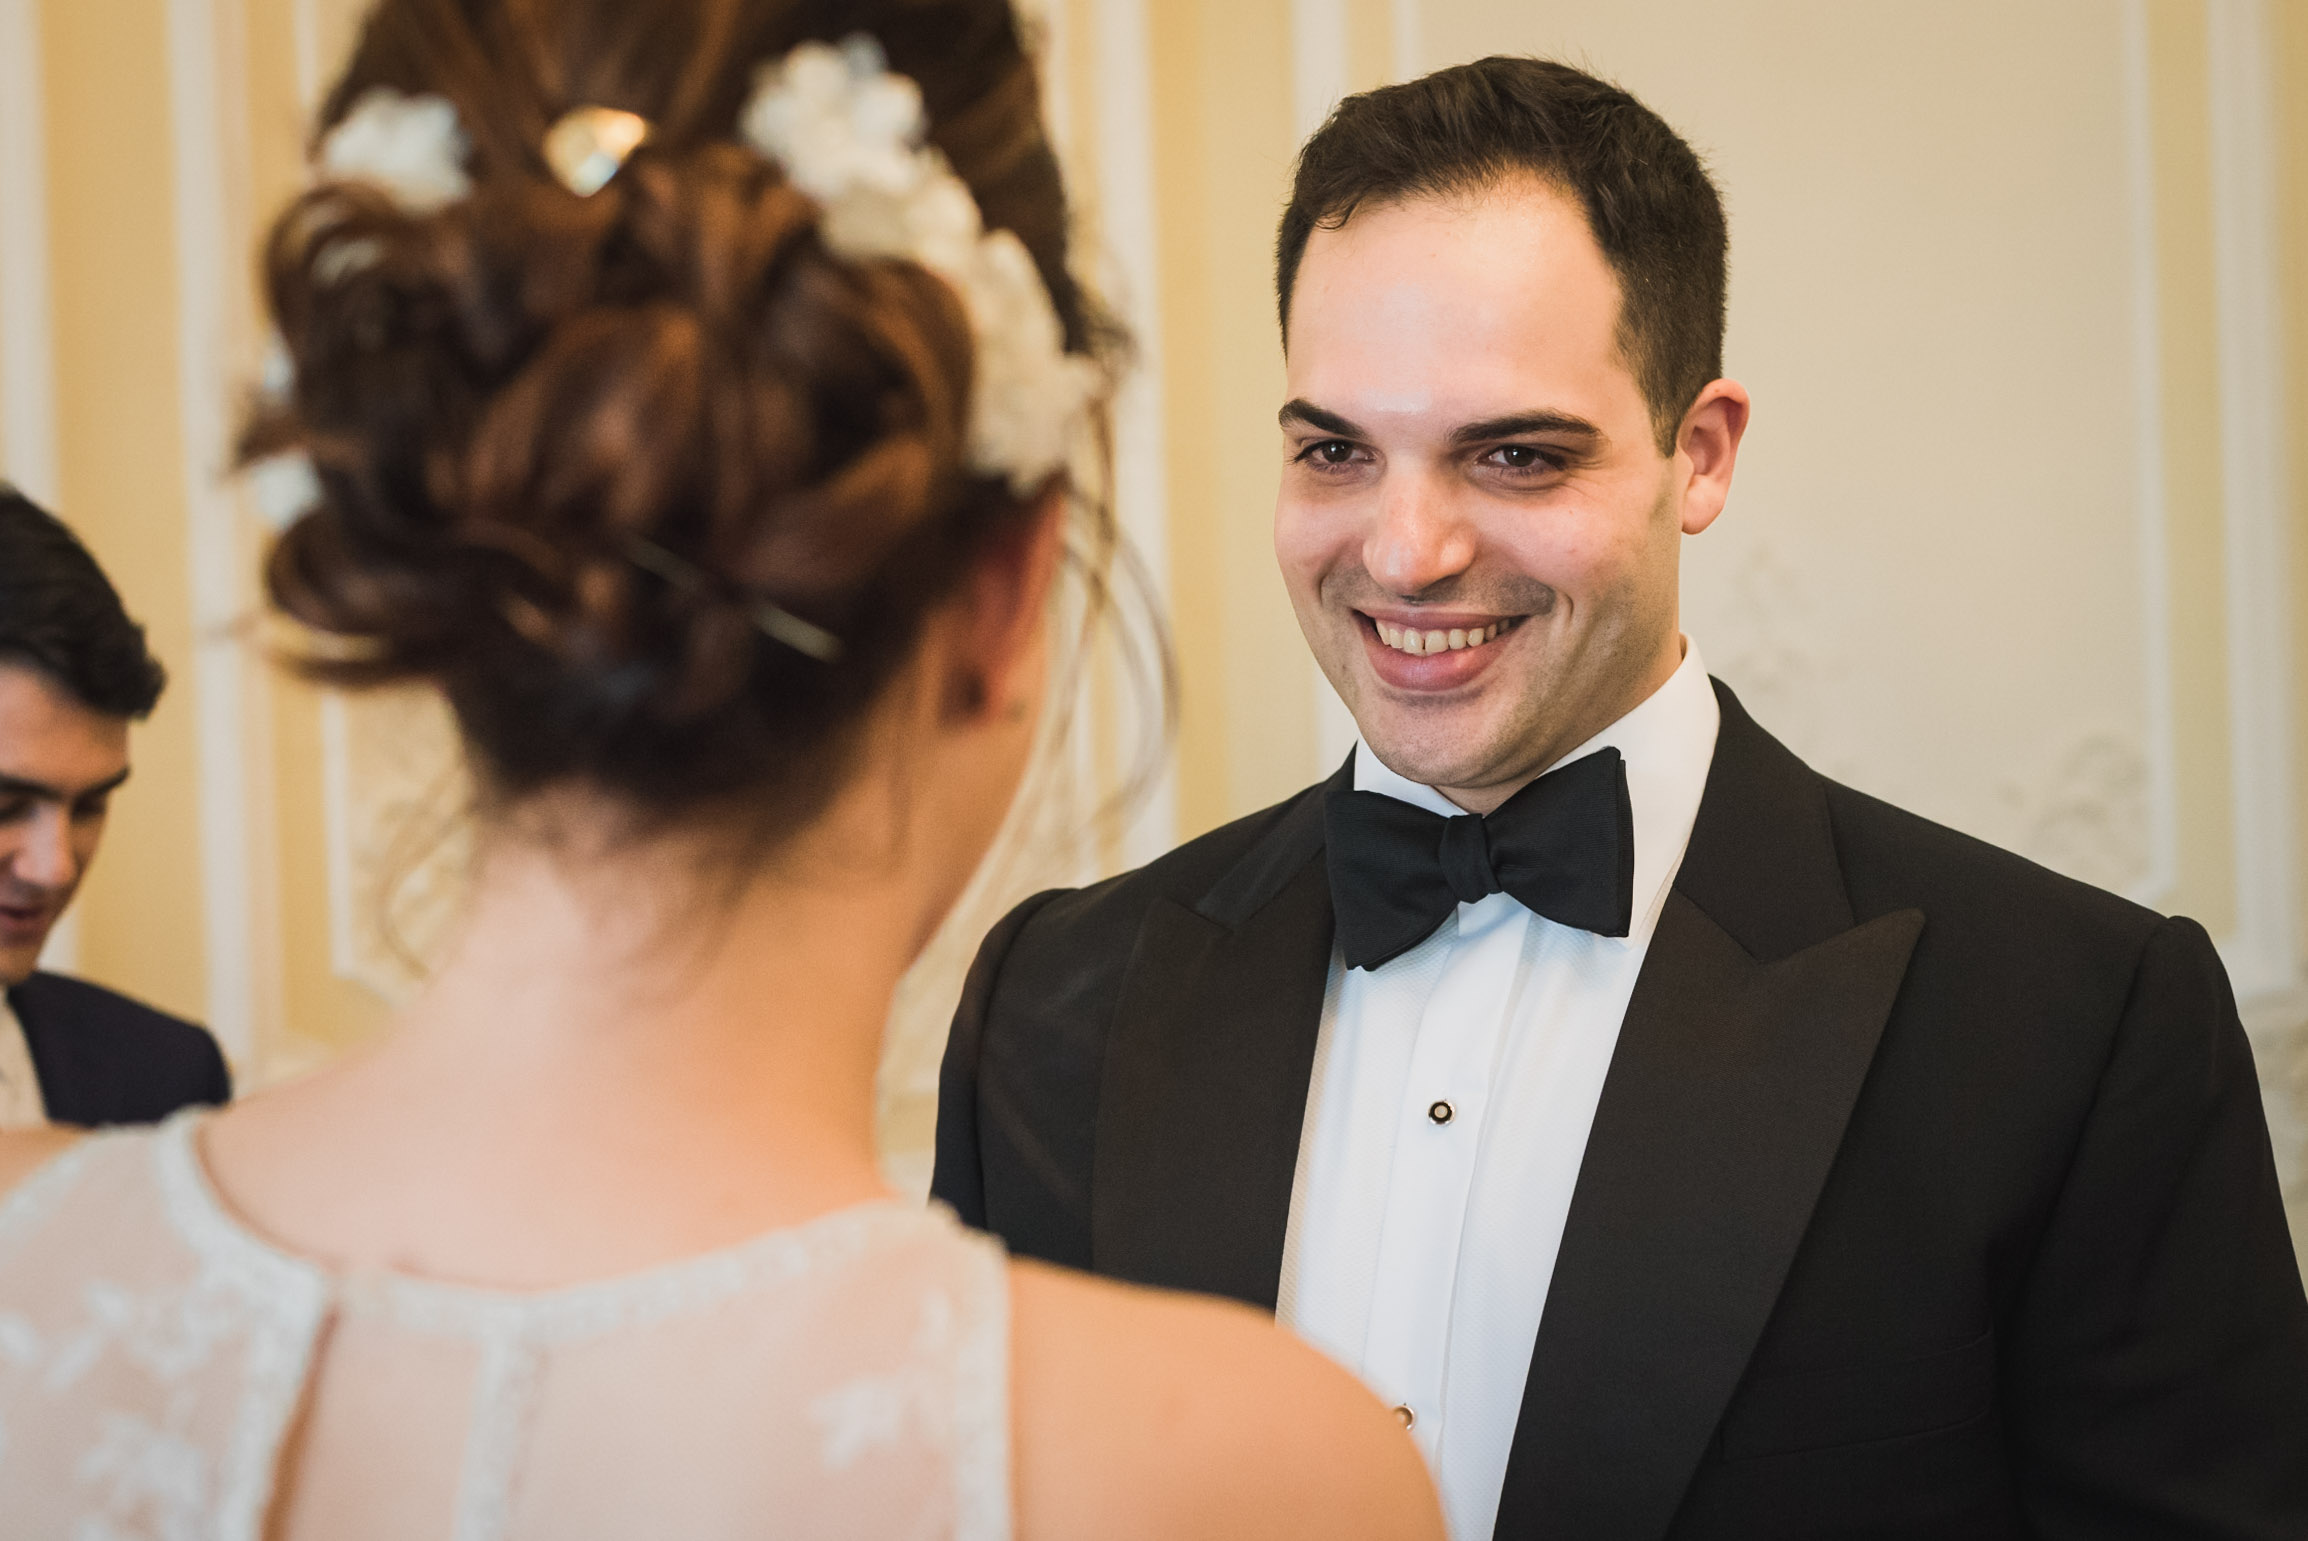 carine bea photography, groom smile wedding ceremony at carlton house terrace london